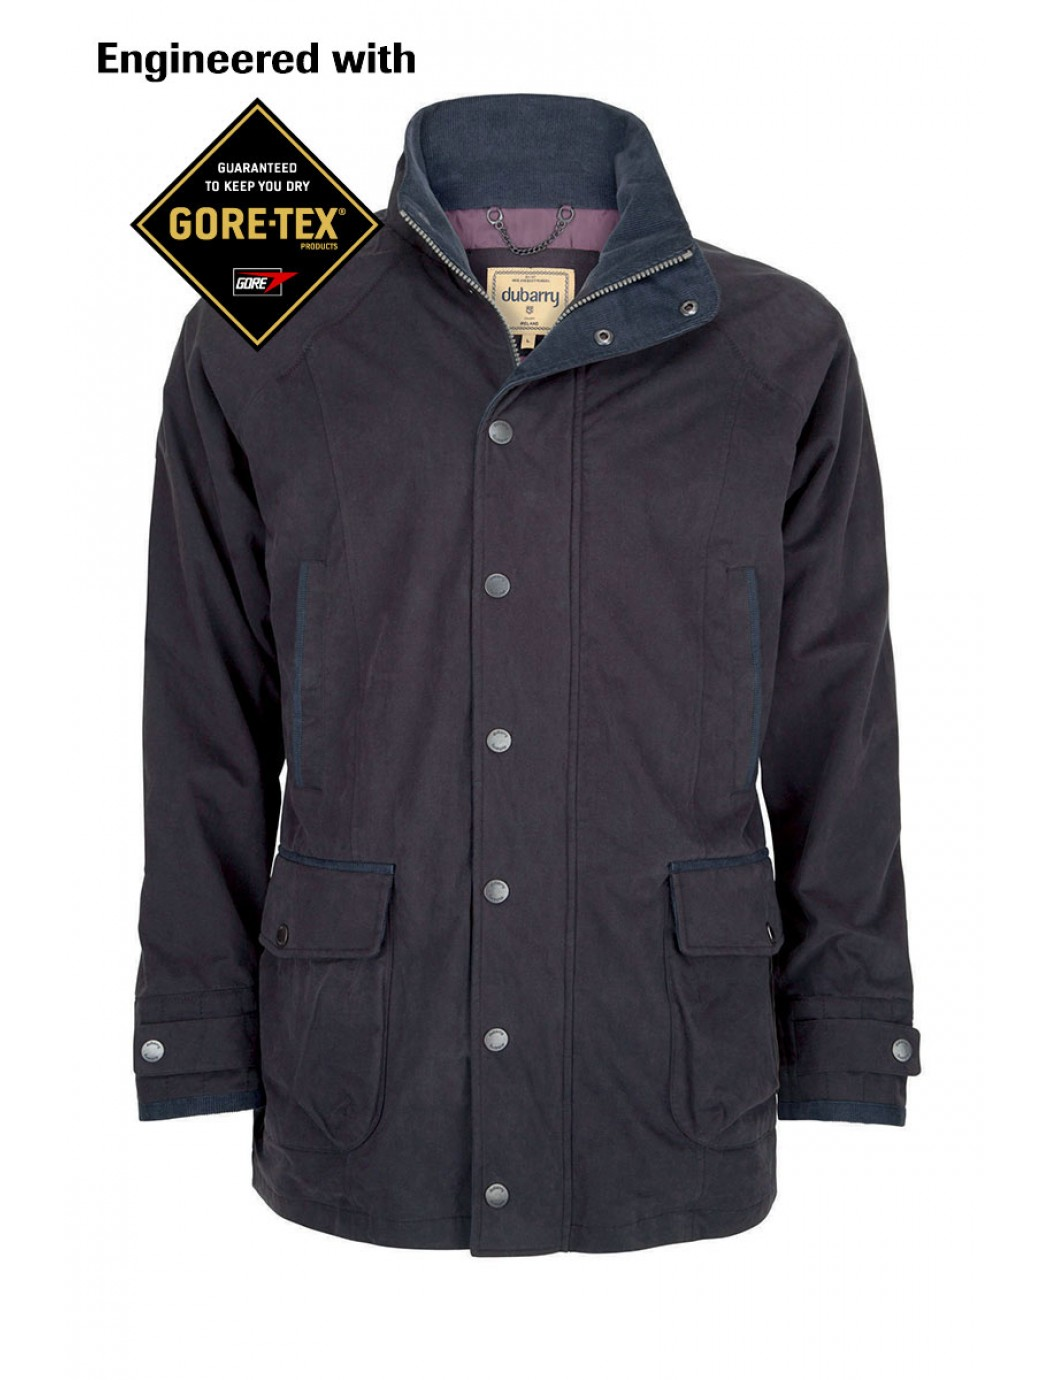 connell-mens-jackets-navy